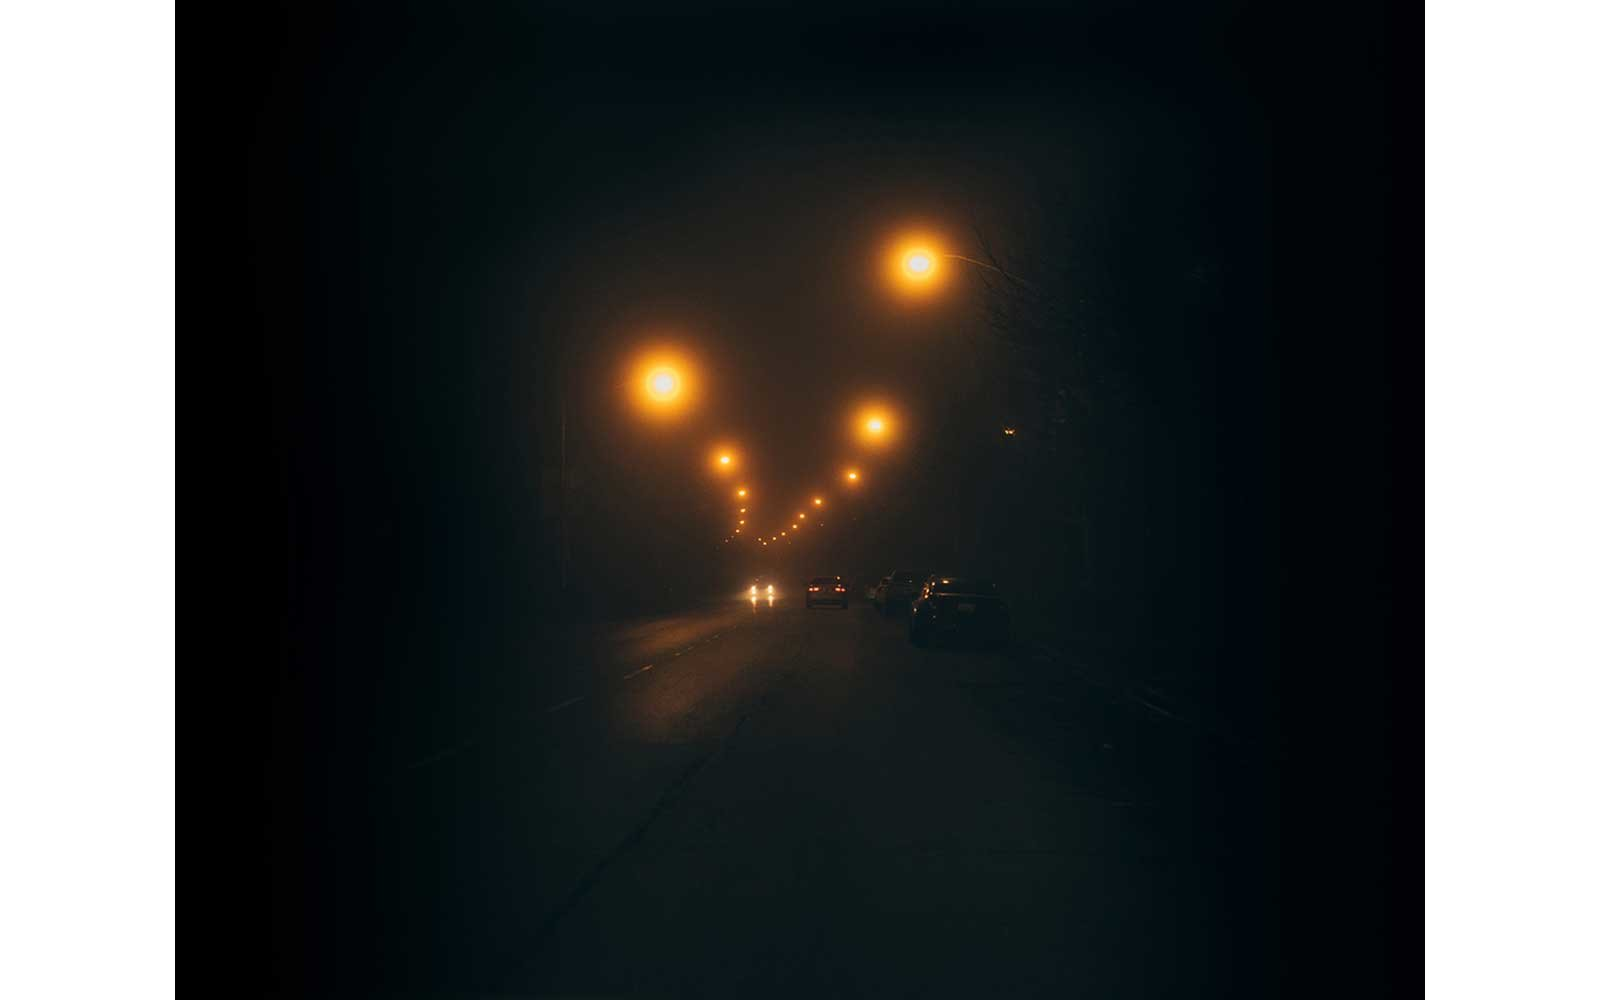 Lights shine through the fog on a road at night